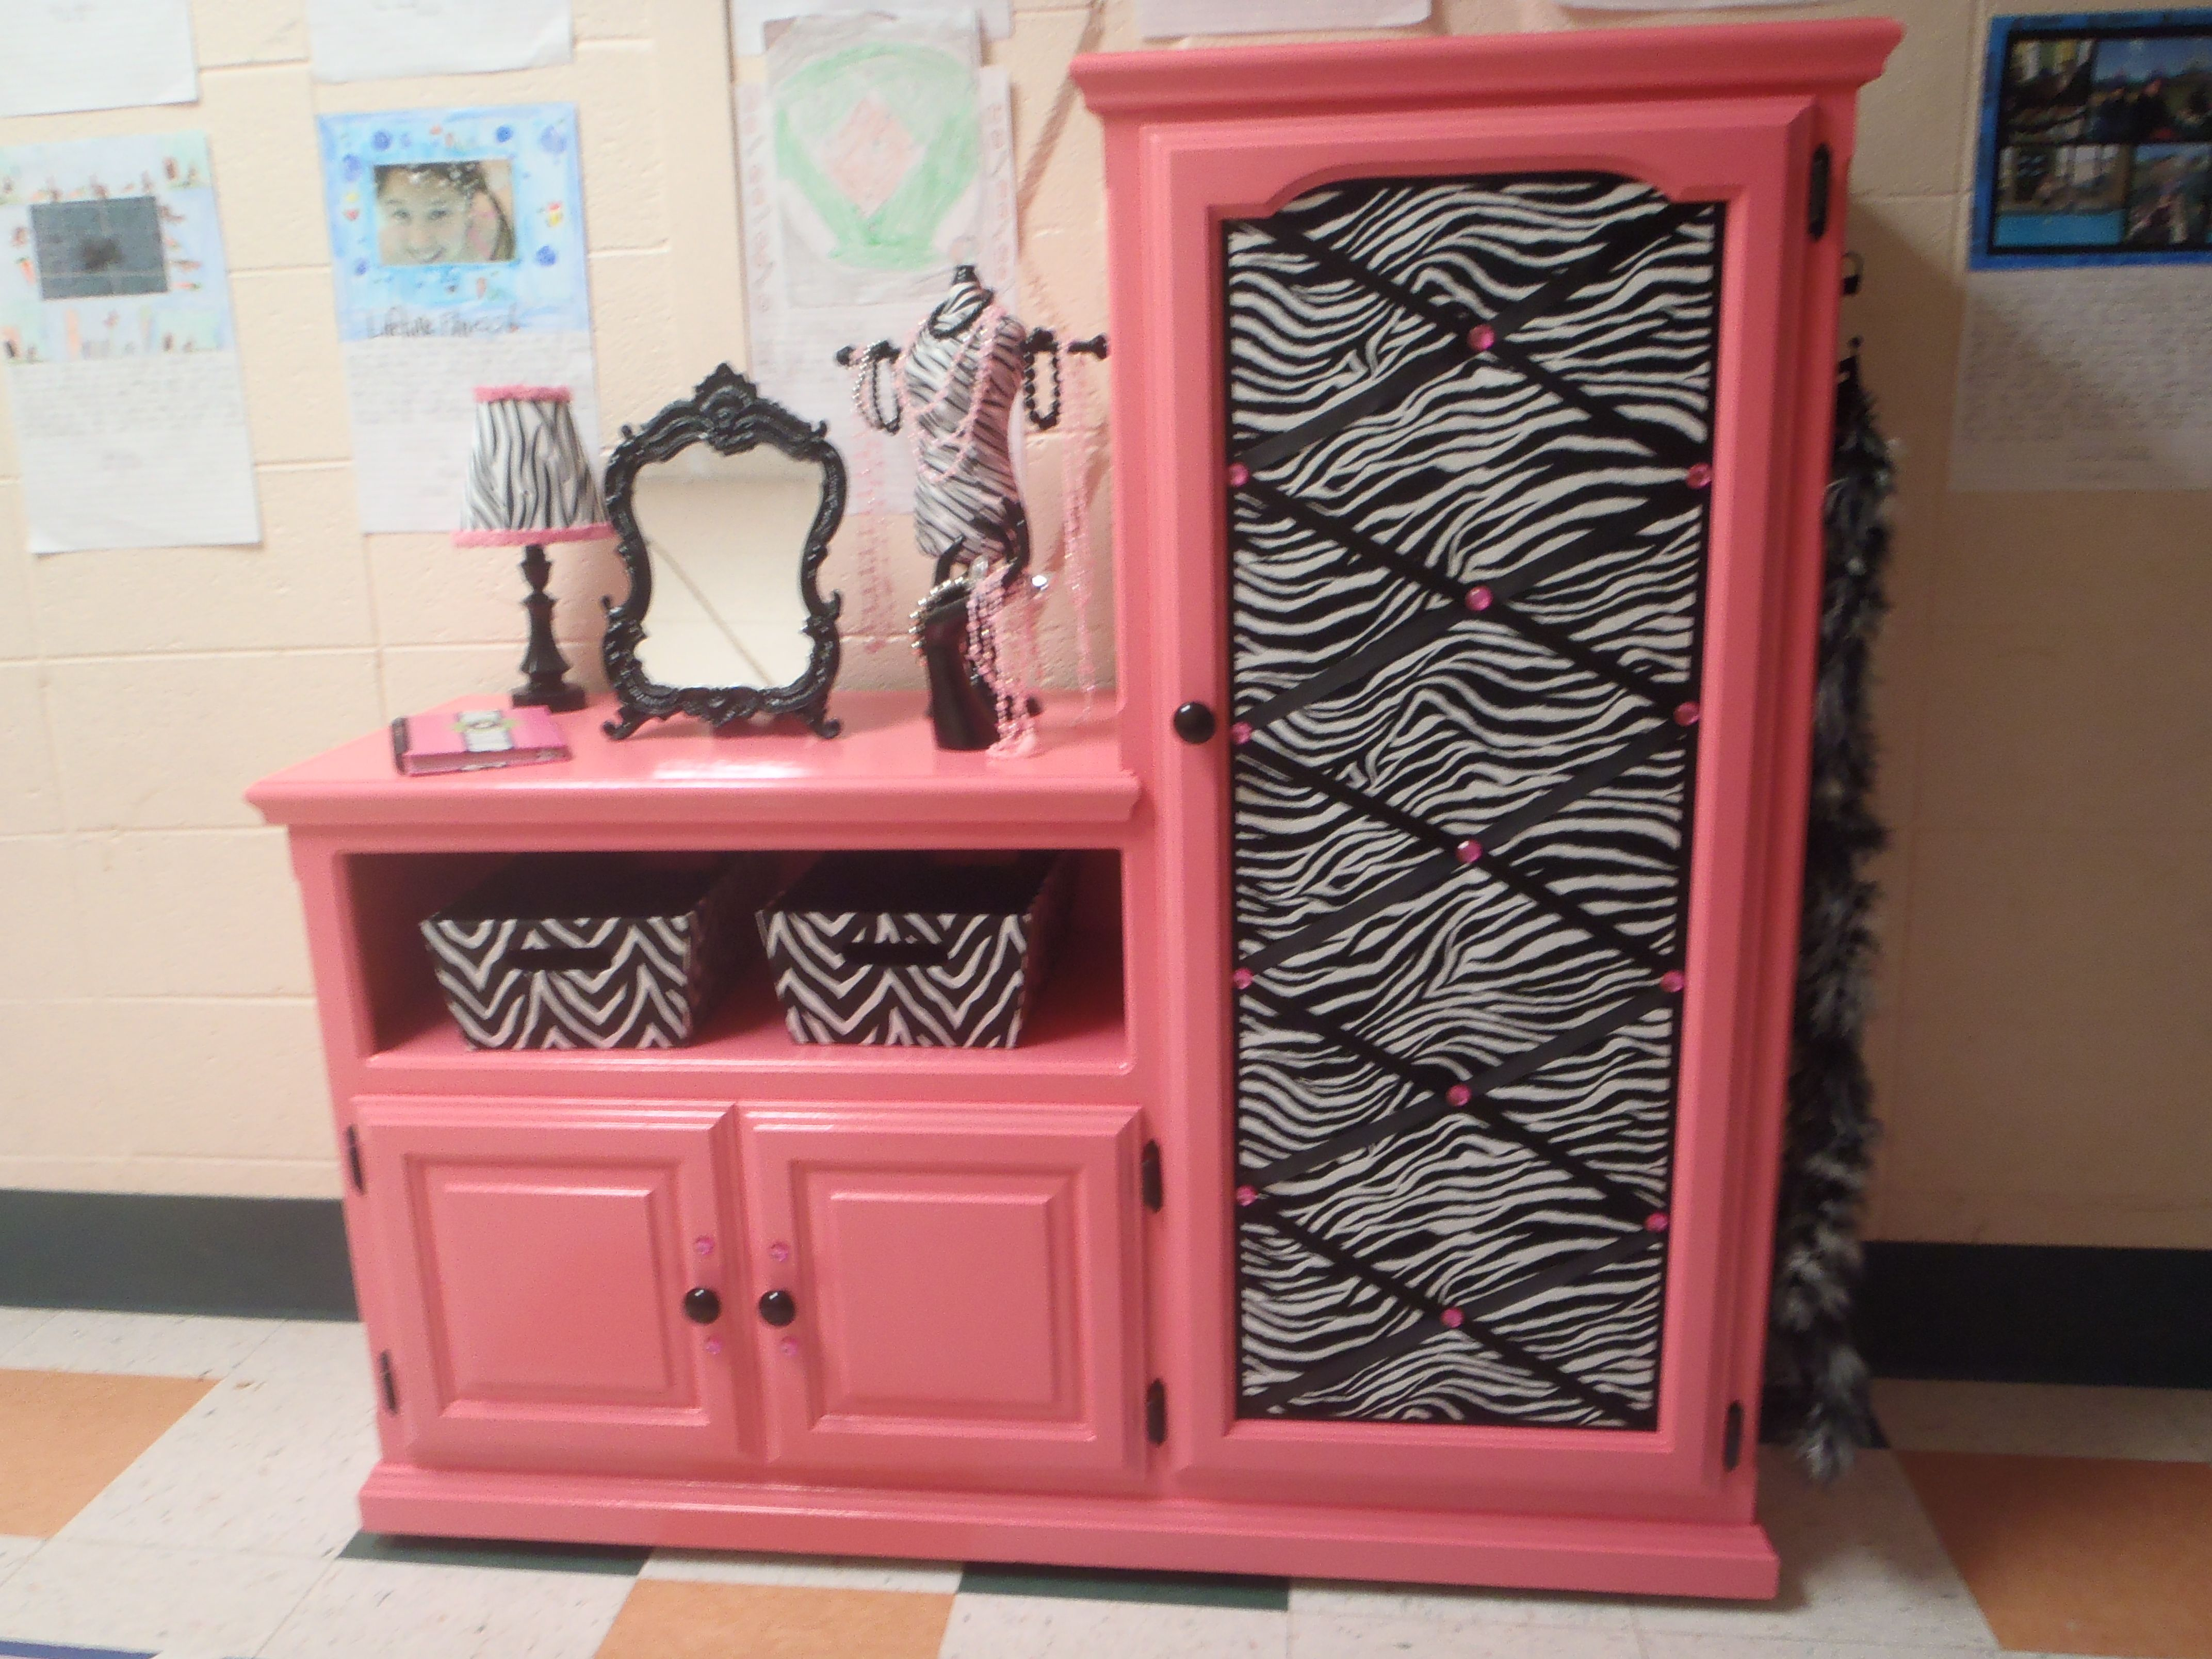 Restaining Old Furniture Free Home Design Ideas Images